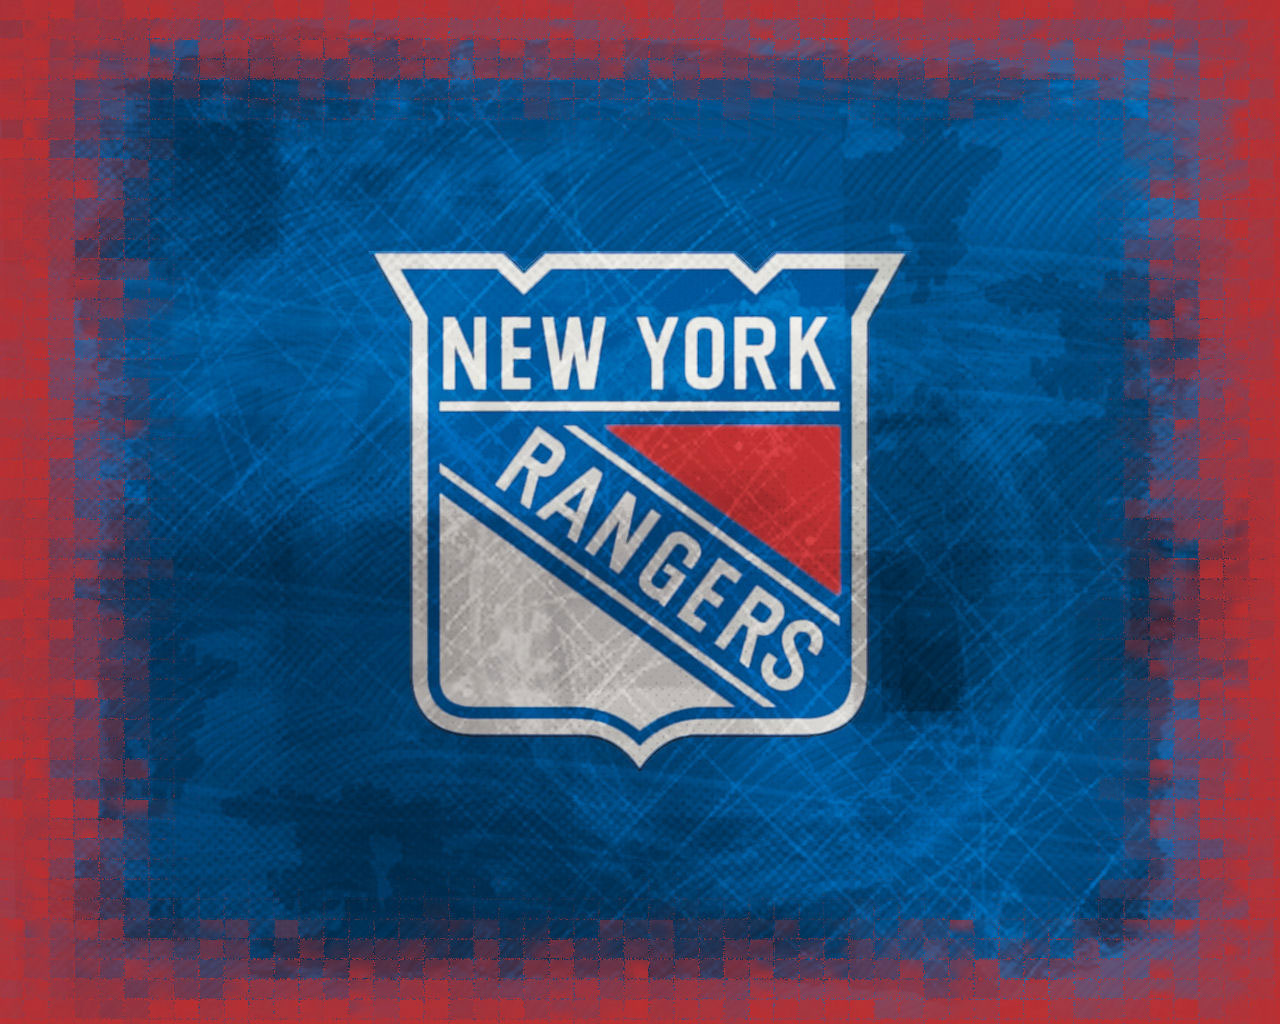 New York Rangers wallpapers New York Rangers background 1280x1024